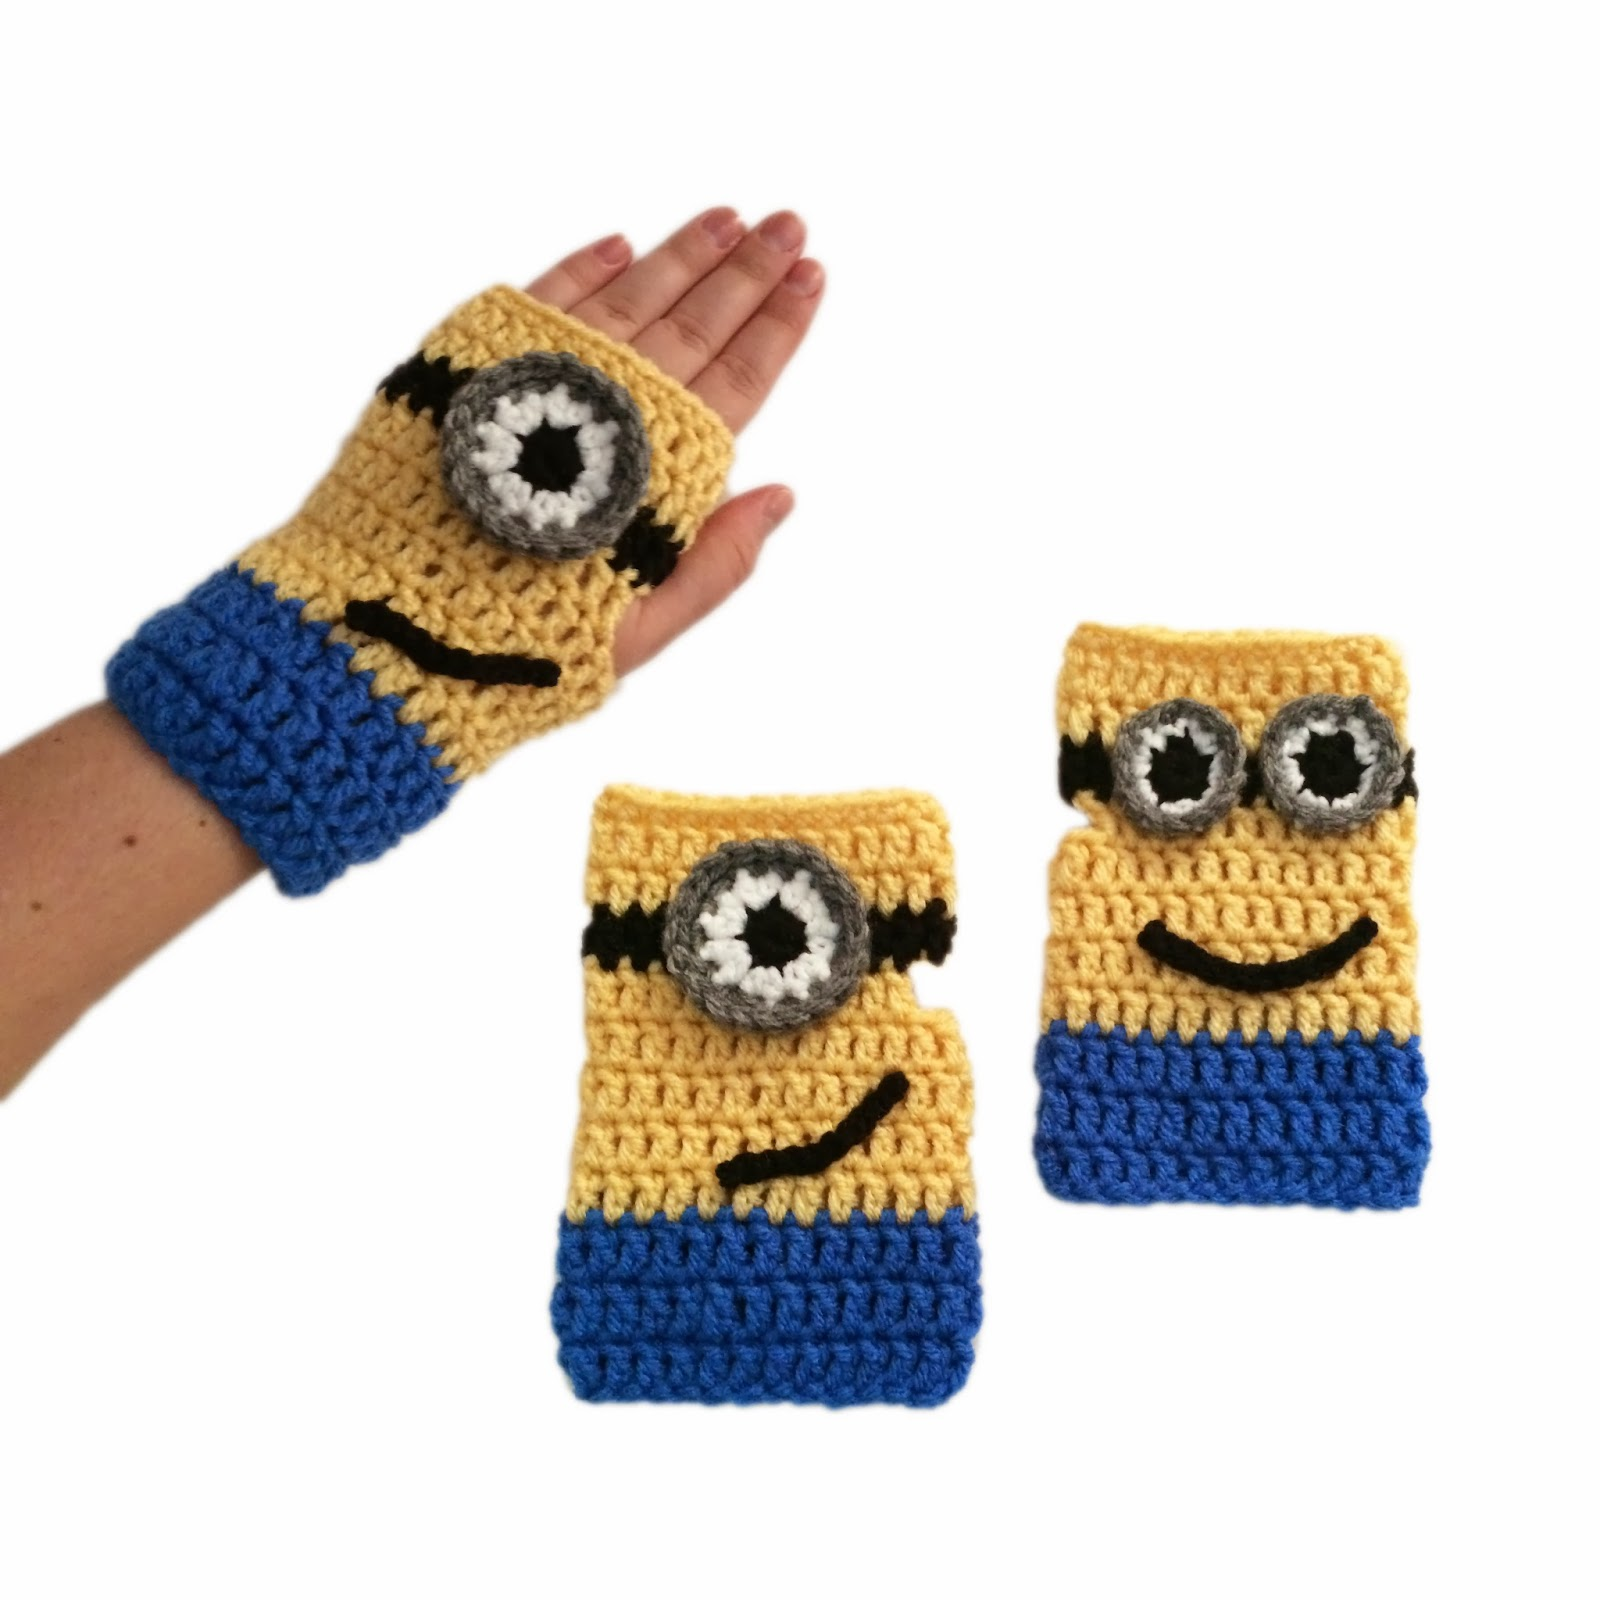 Tampa Bay Crochet: Free Crochet Pattern: Minion Mitts